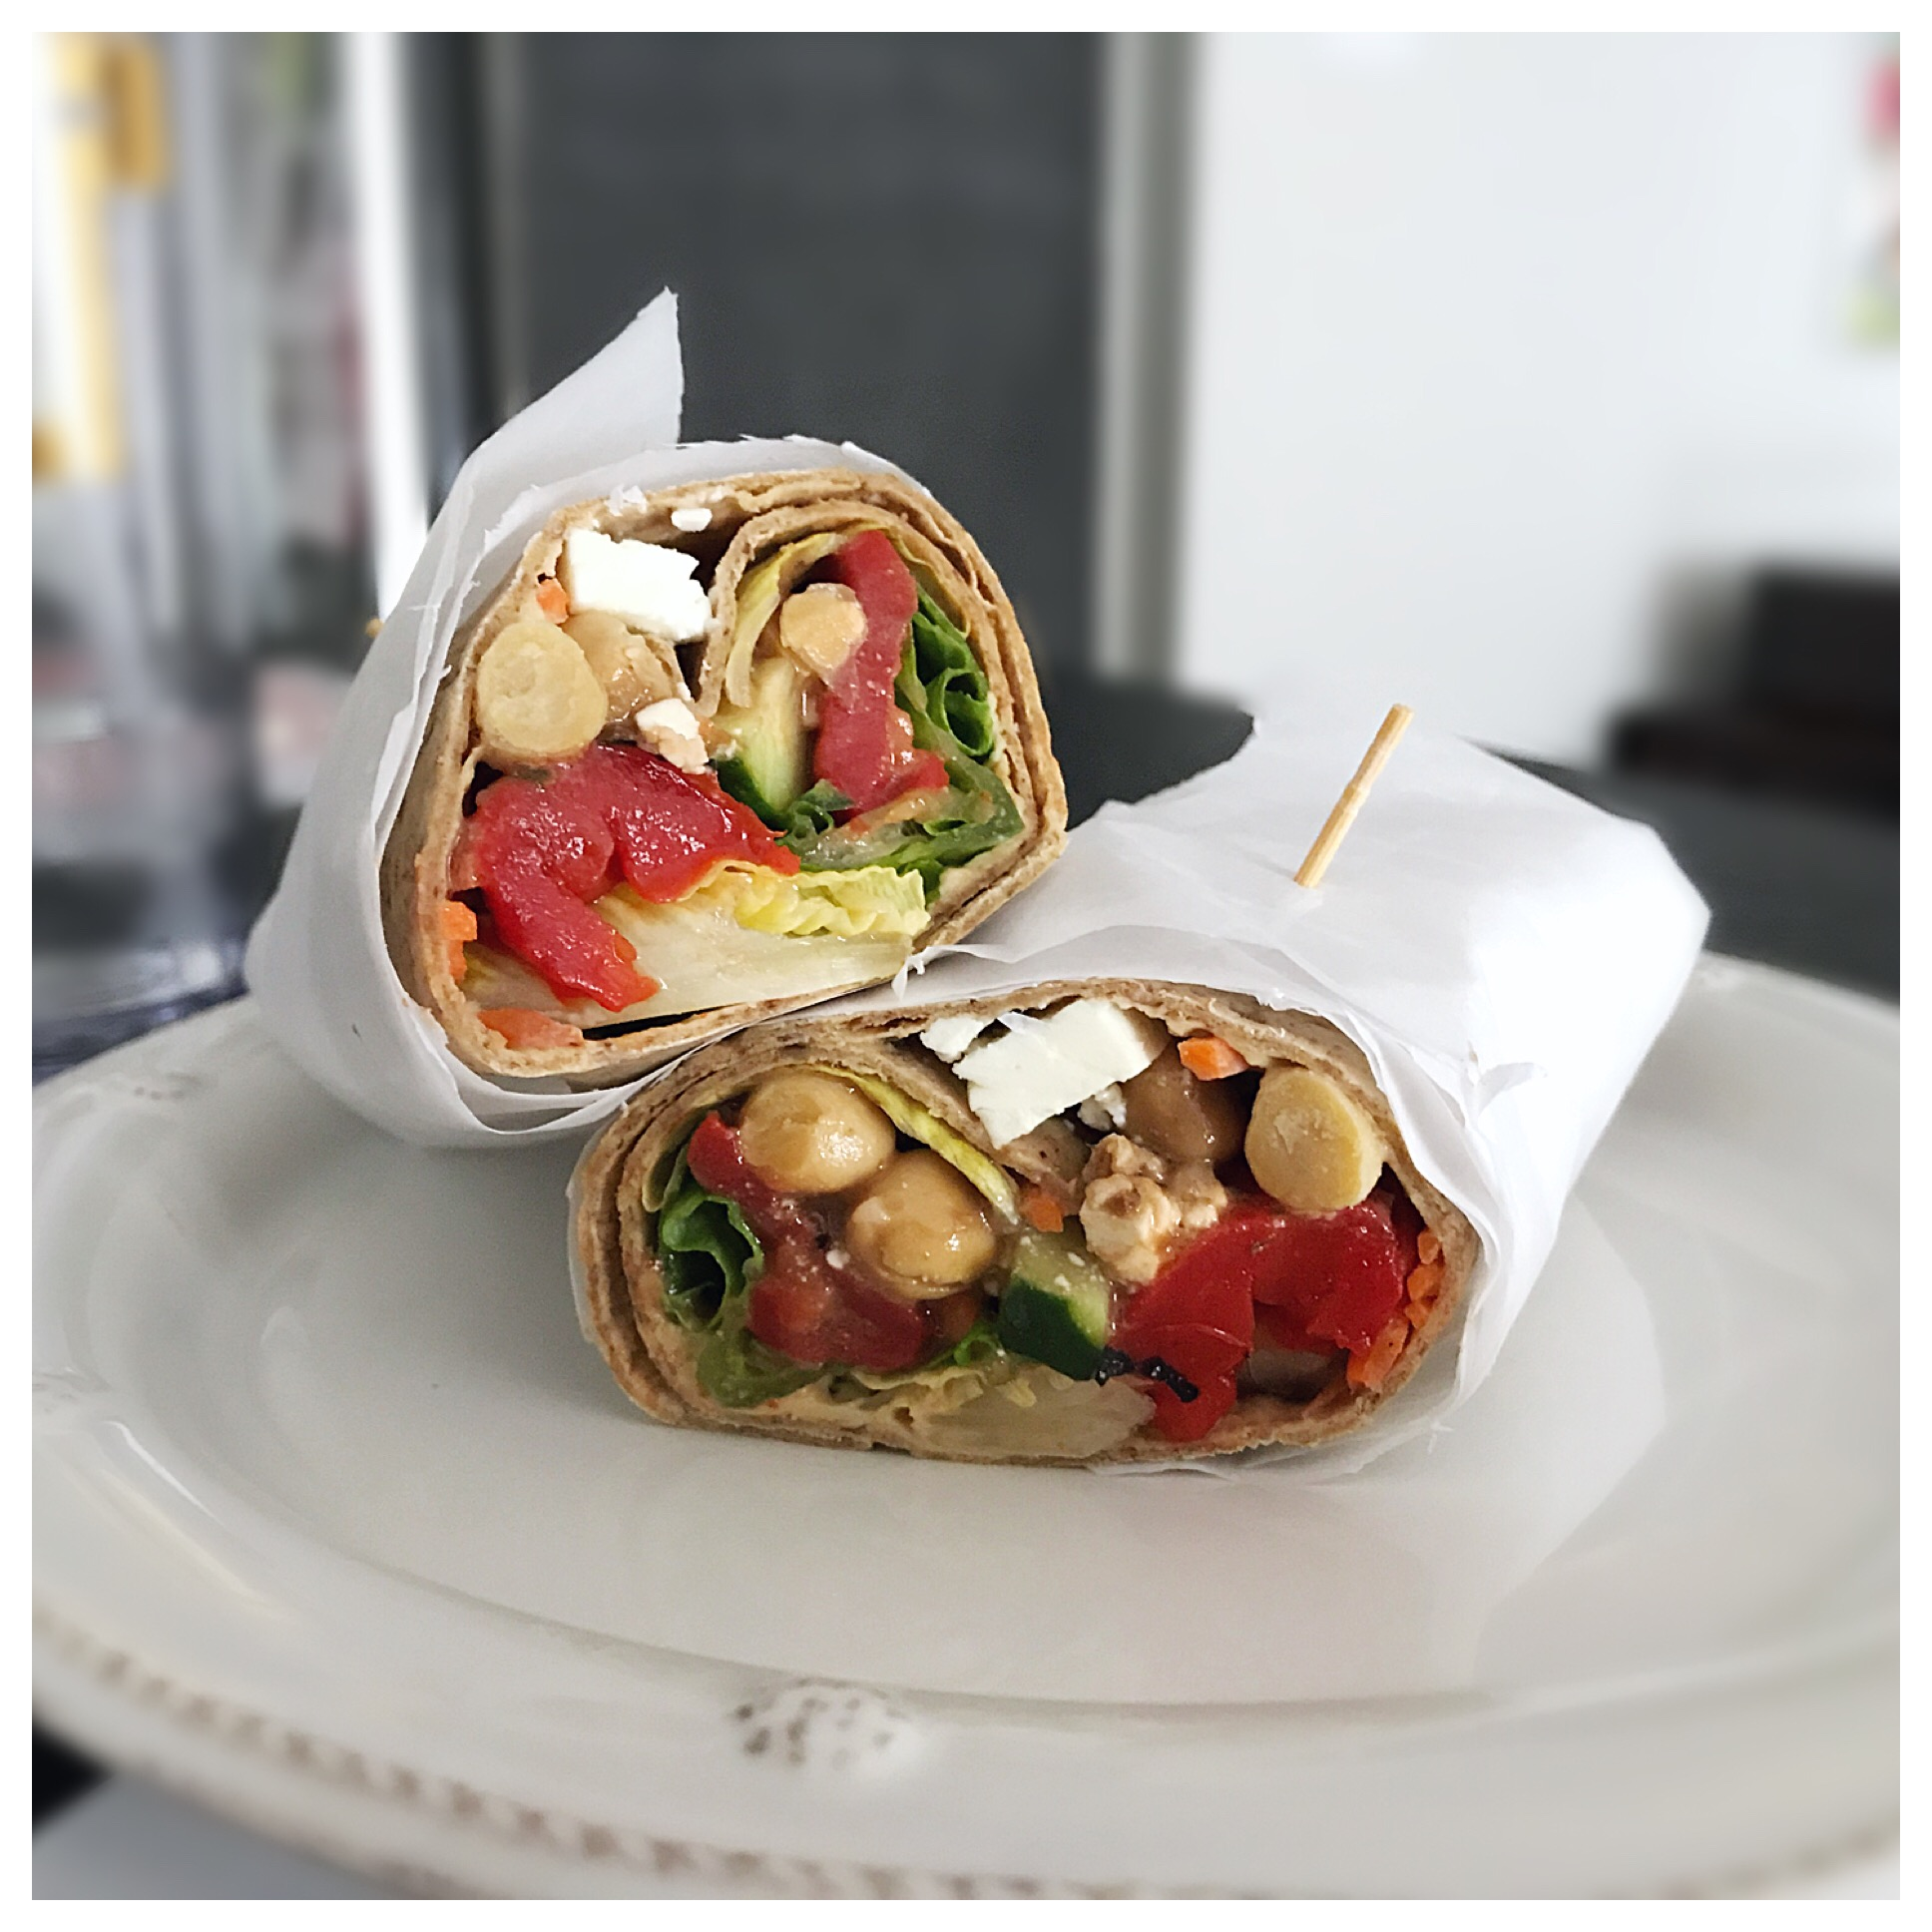 Mediterranean Lunch Wrap 2.JPG